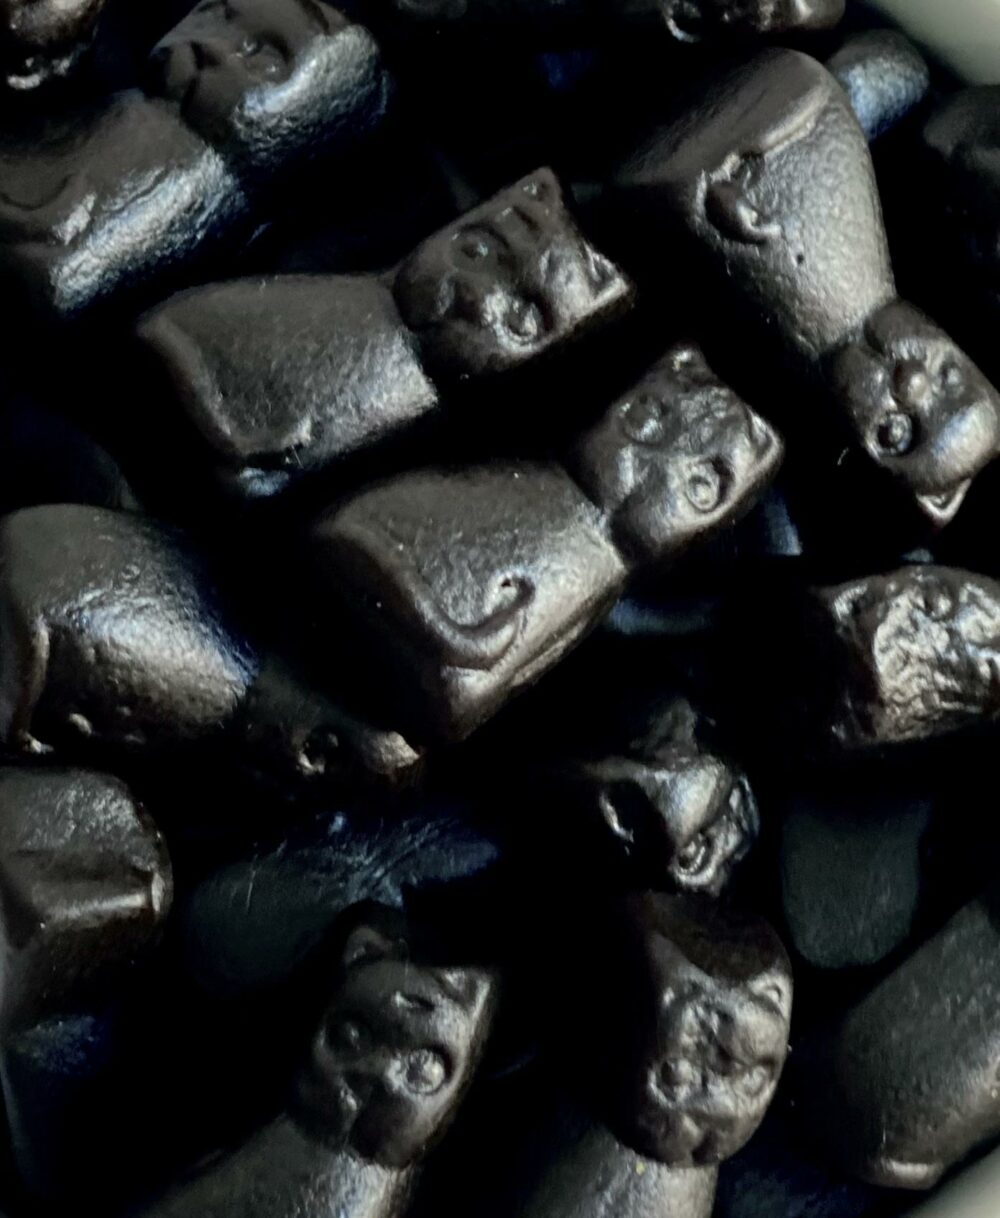 bunch of black licorice cats